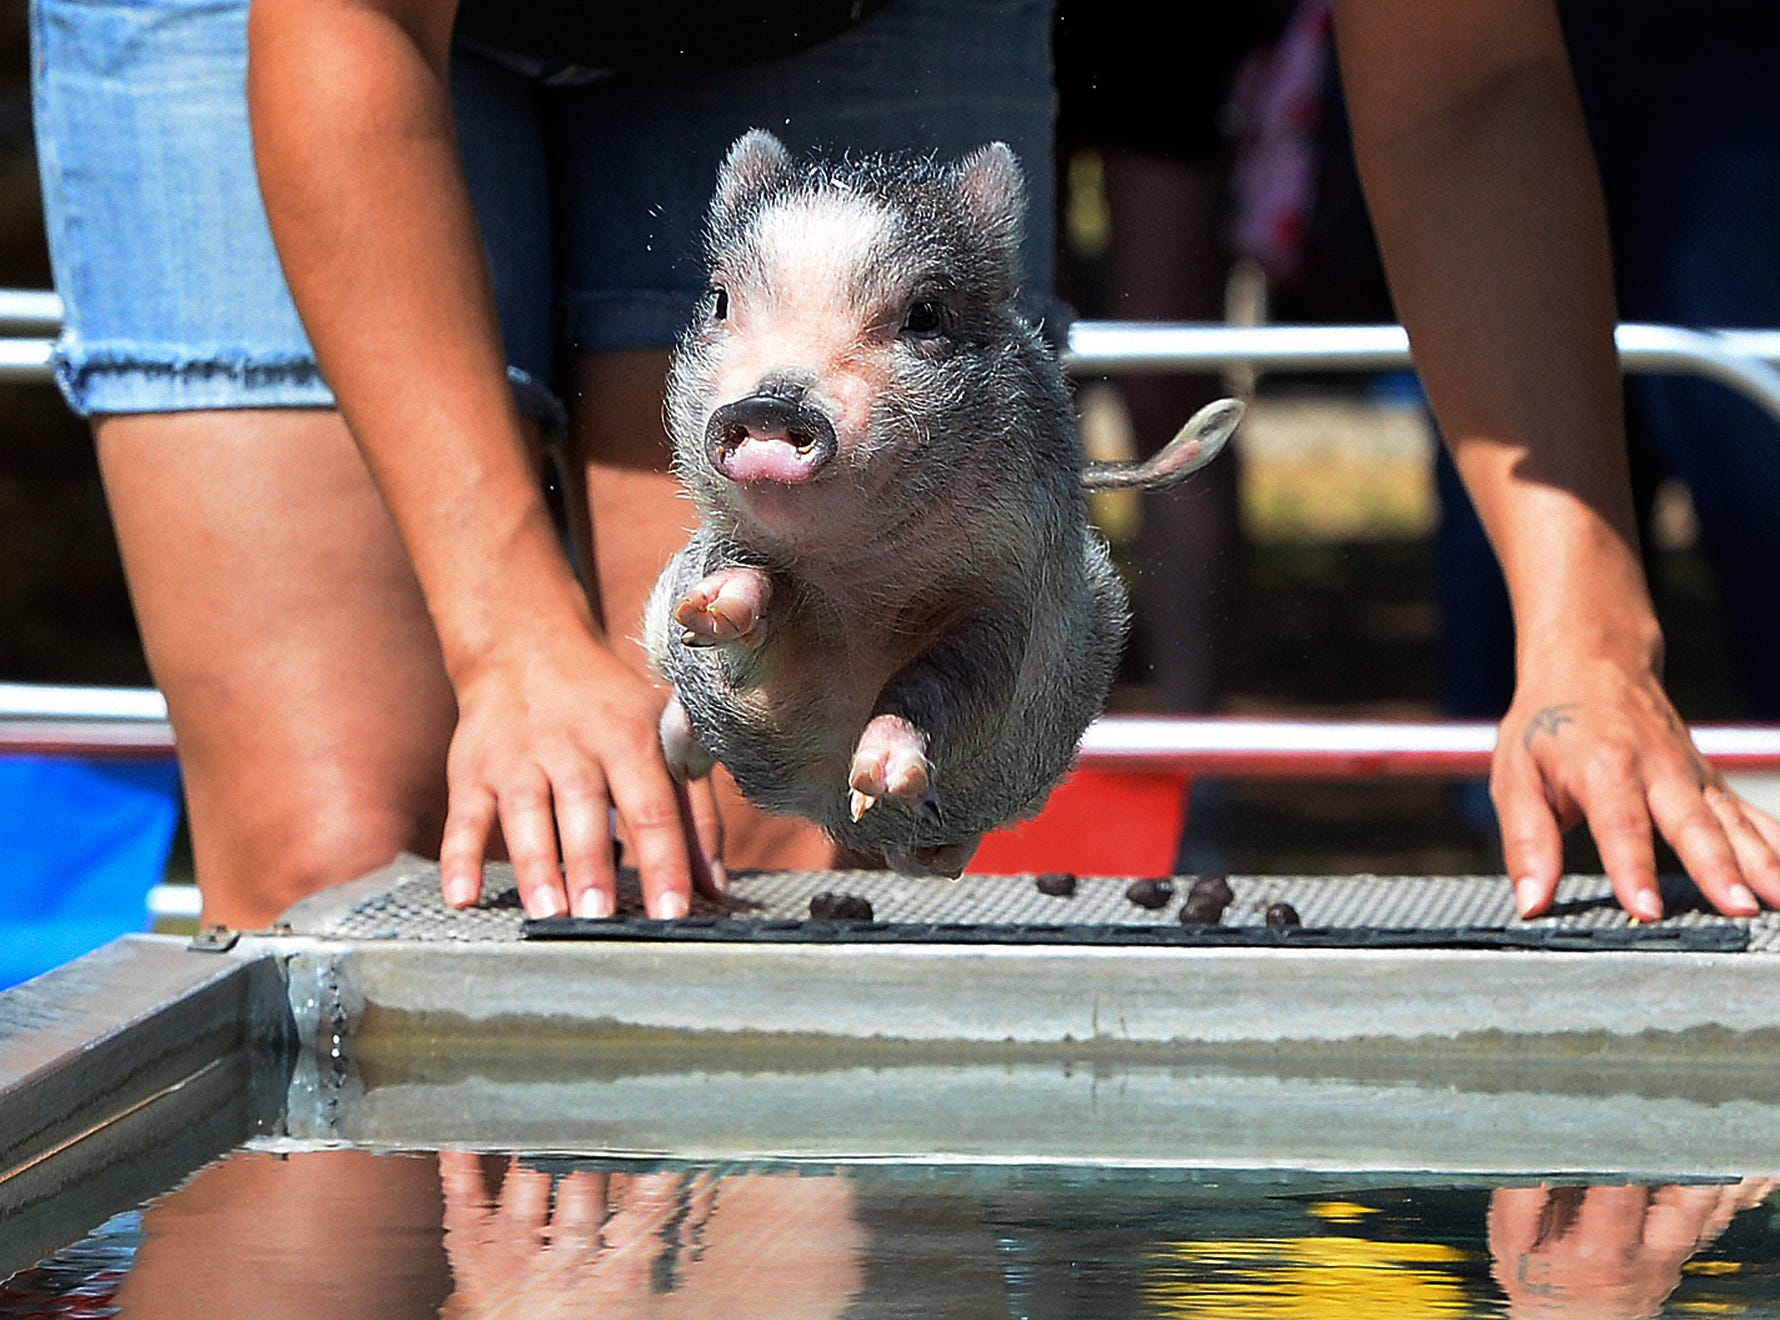 """Swifty the swimming pig jumps into the """"pool"""" for a quick sprint to the other end during the Swifty Swine Racing Pigs show, Wednesday, April 3, 2019, at the annual Yuma County Fair, in Yuma, Ariz."""